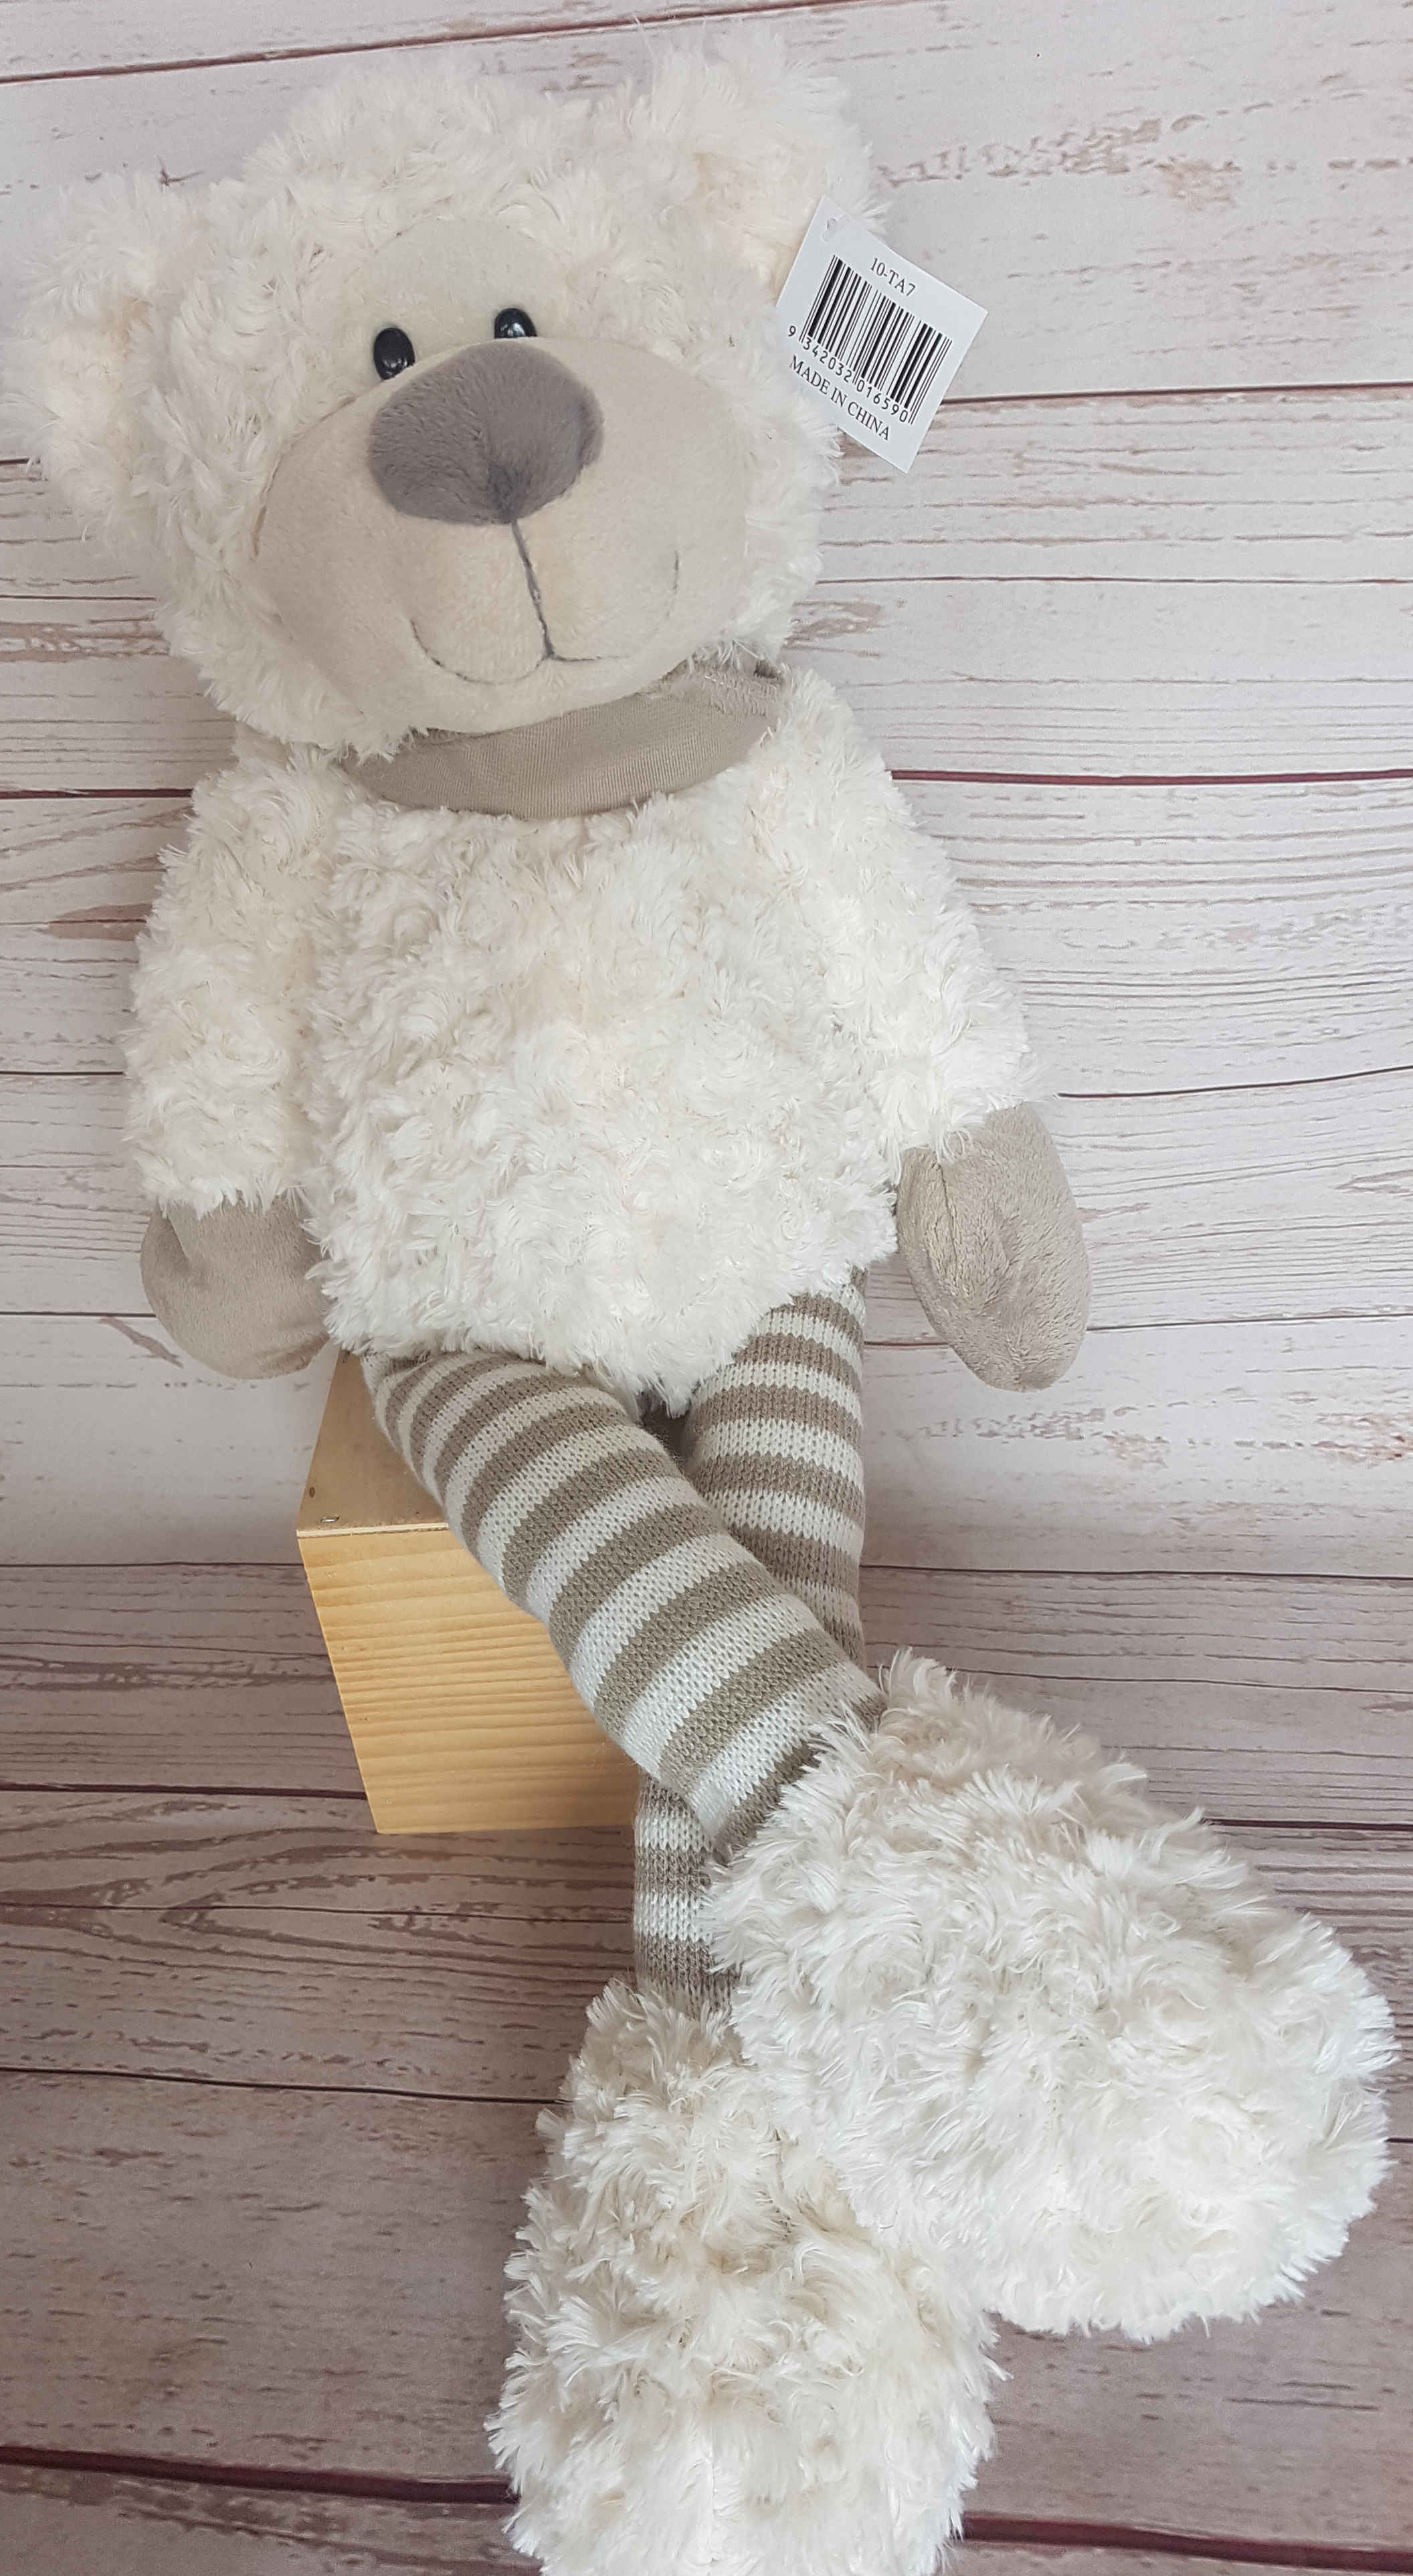 Cutie, a delightful, bear that is 60 cm in length, sure to become a treasured friend.